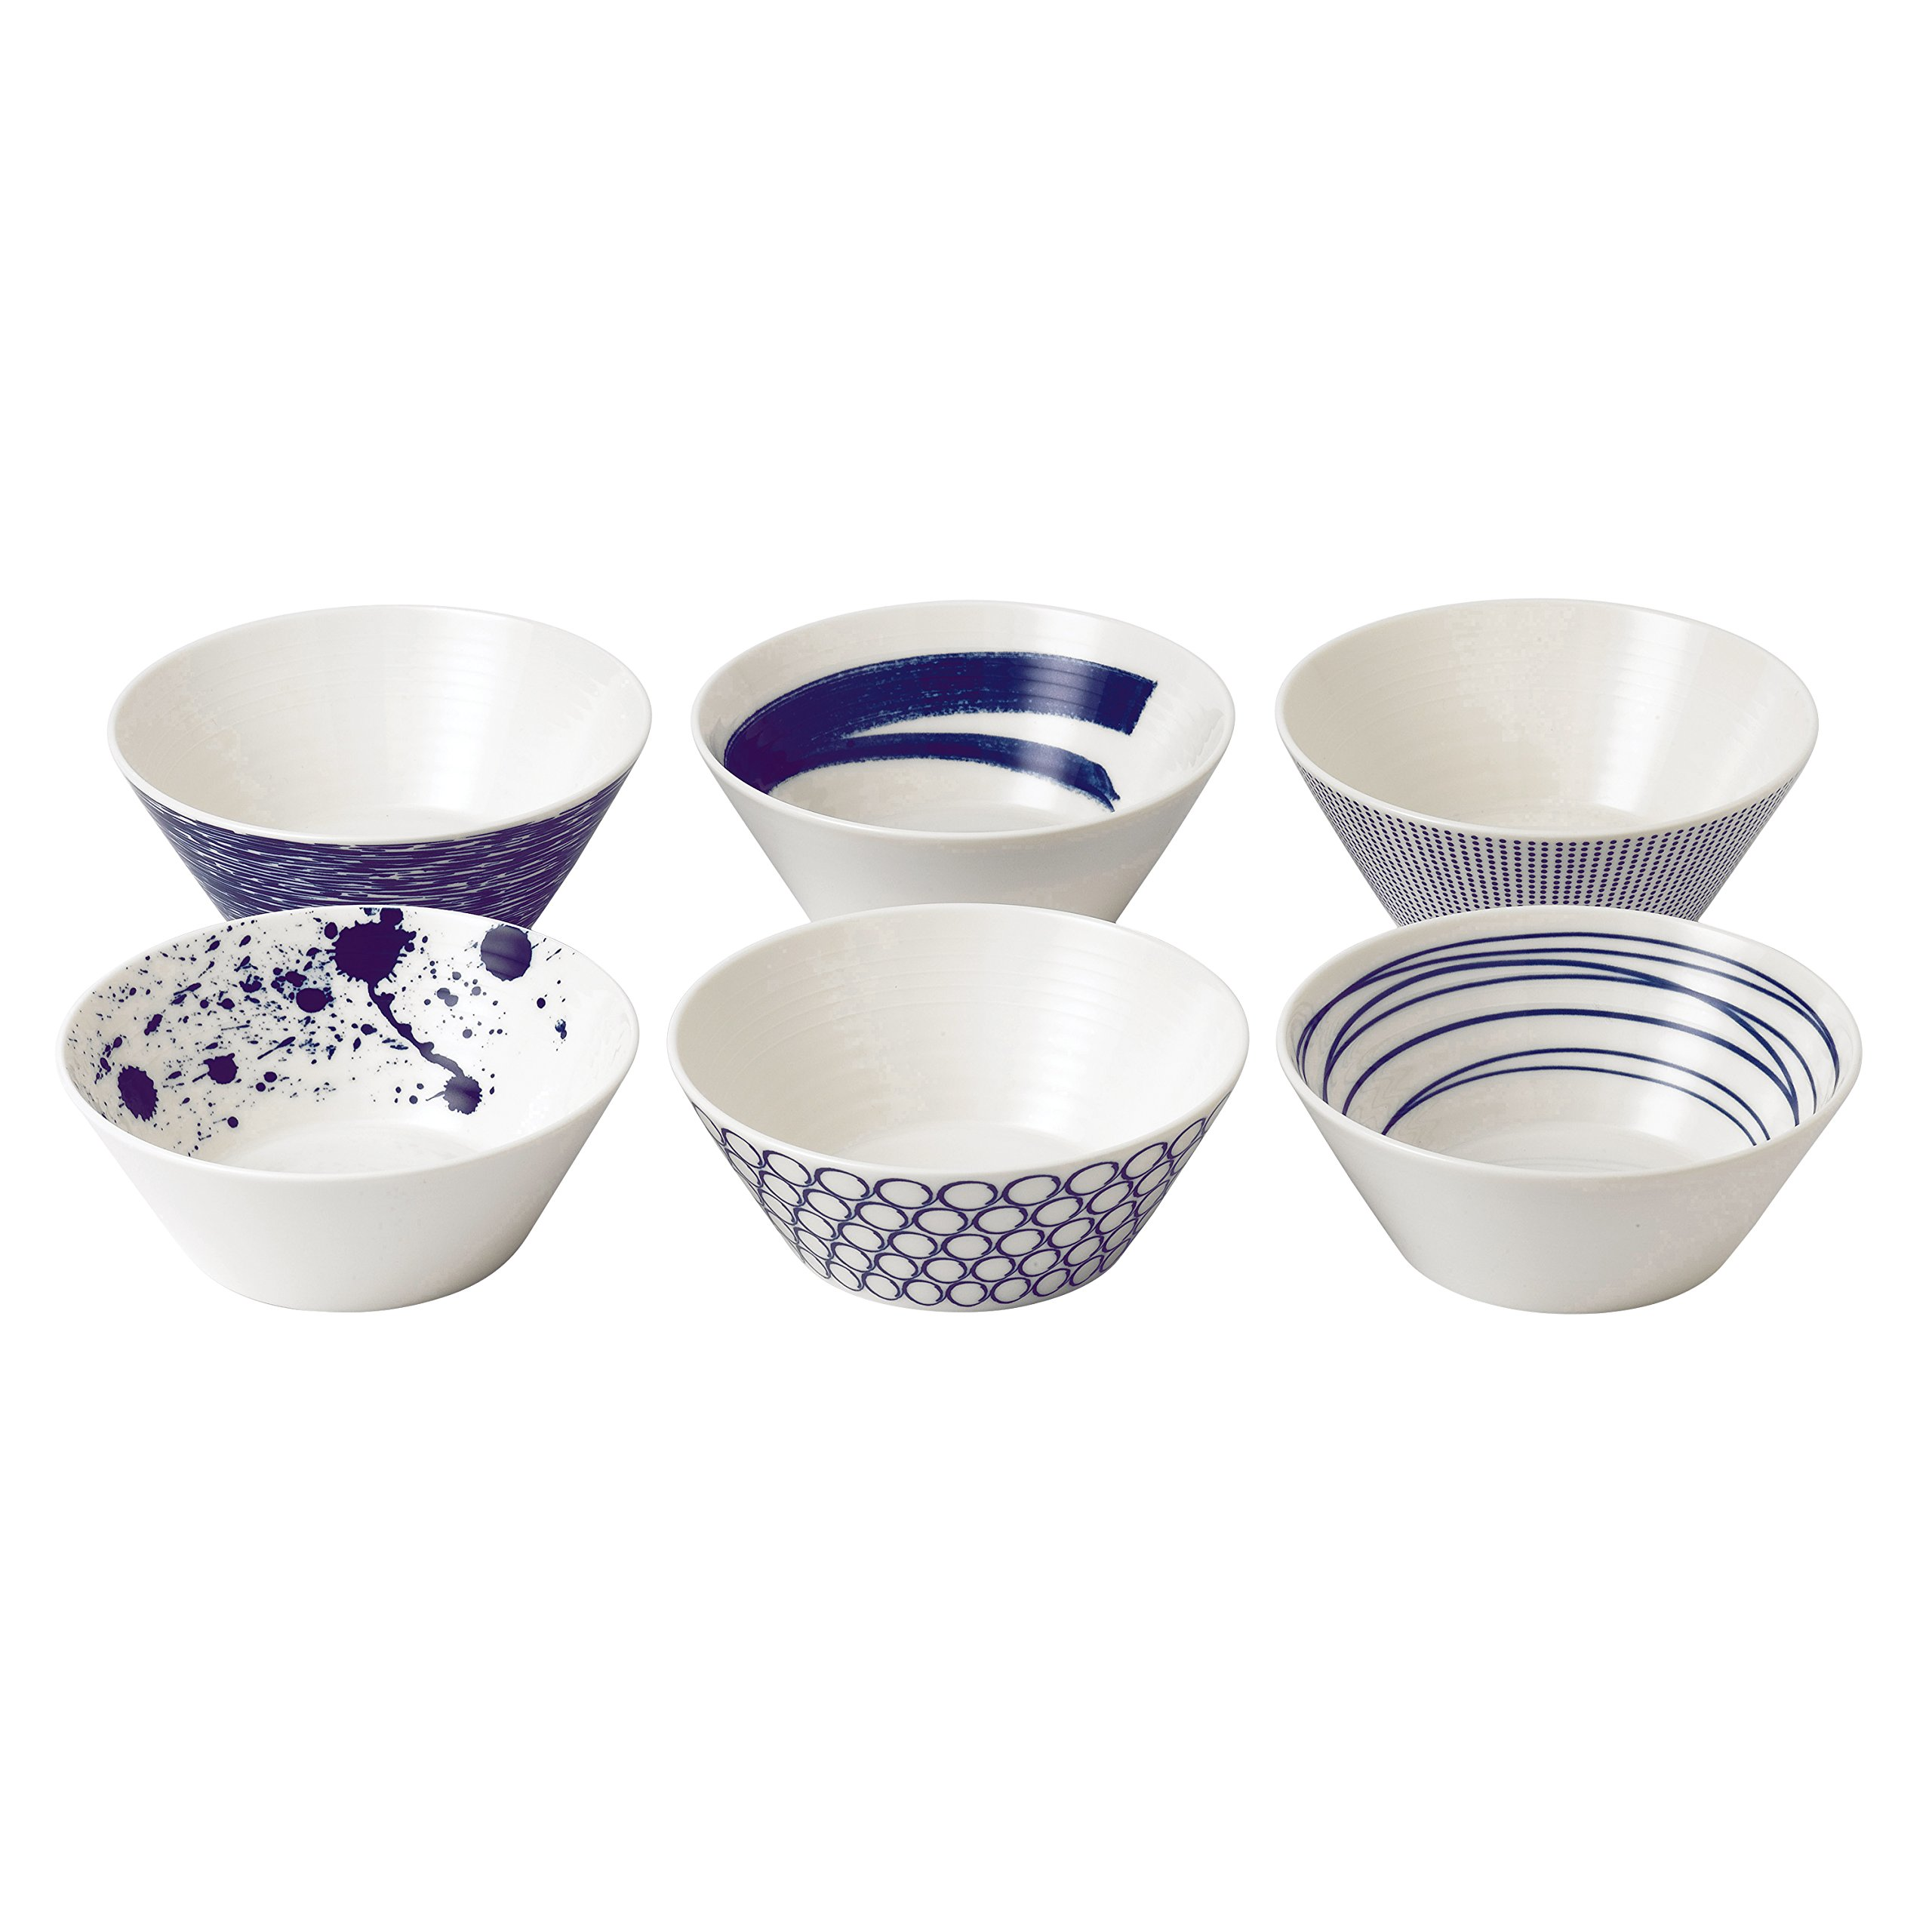 Royal Doulton 40019363 Pacific Mixed Patterns Bowls, 6.2'', Multiple,(Set of 6)